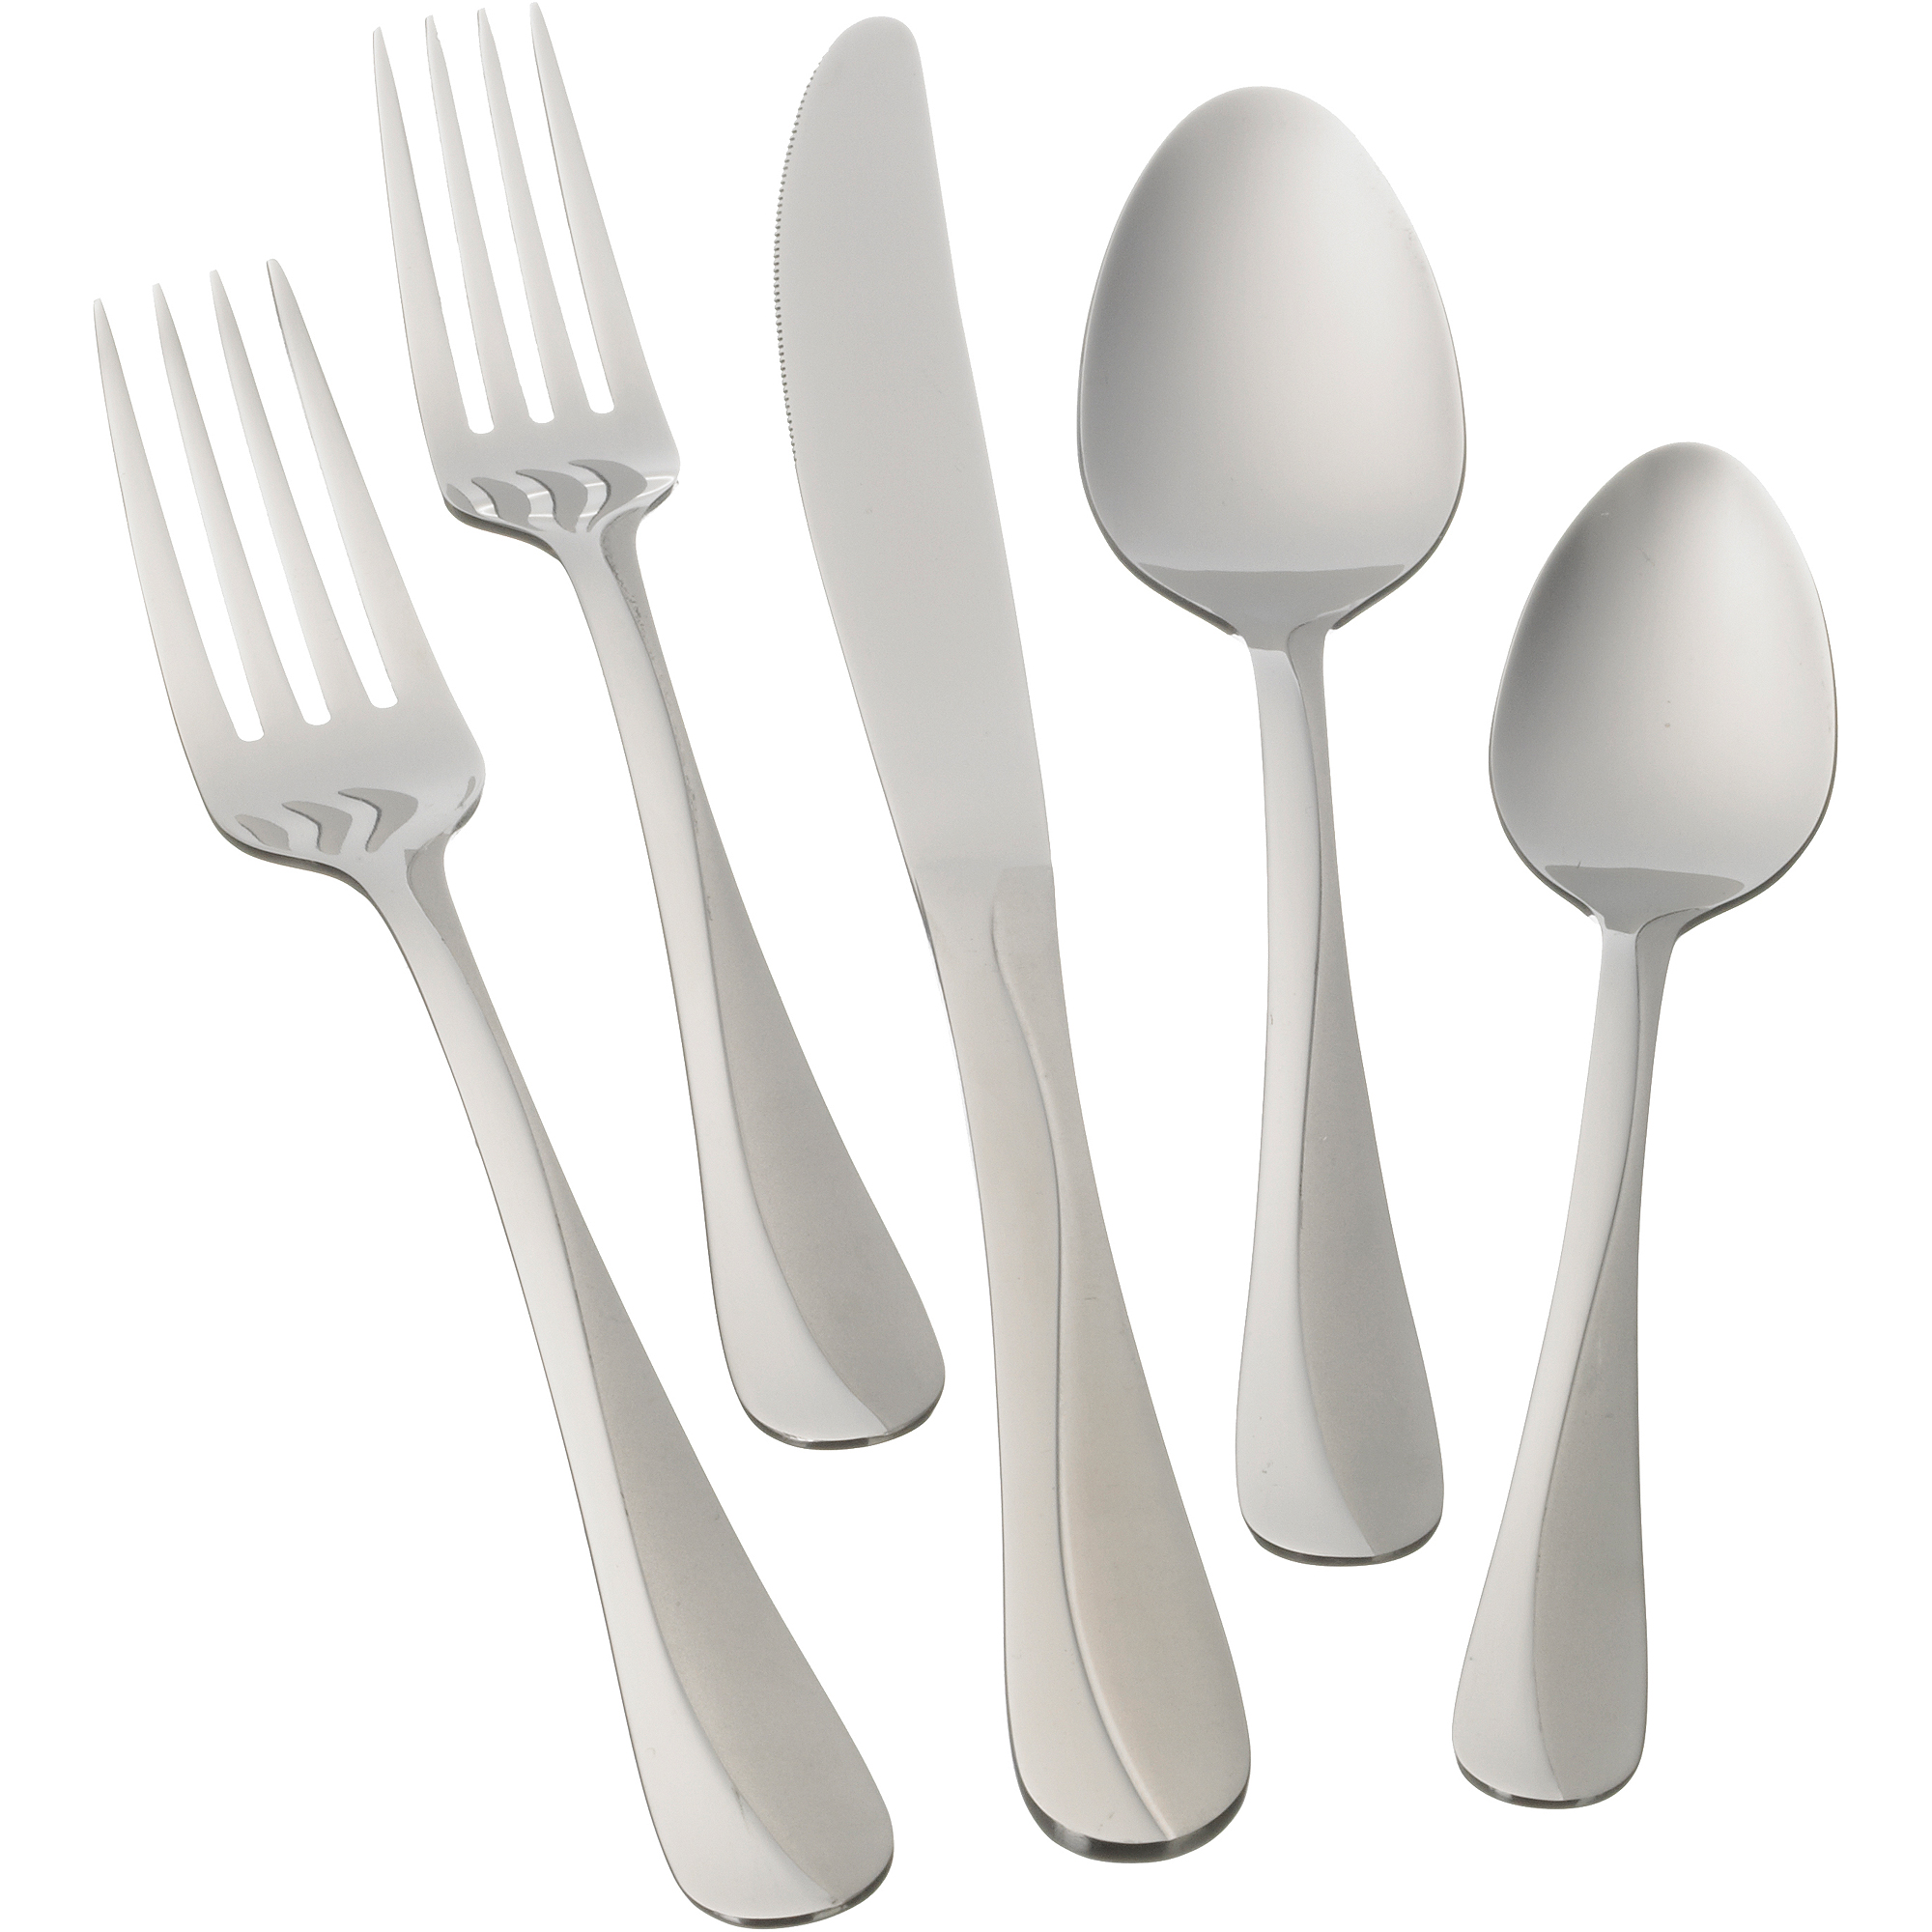 Discount Stainless Flatware Mainstays Whitney Flatware Set 20 Piece Stainless Steel